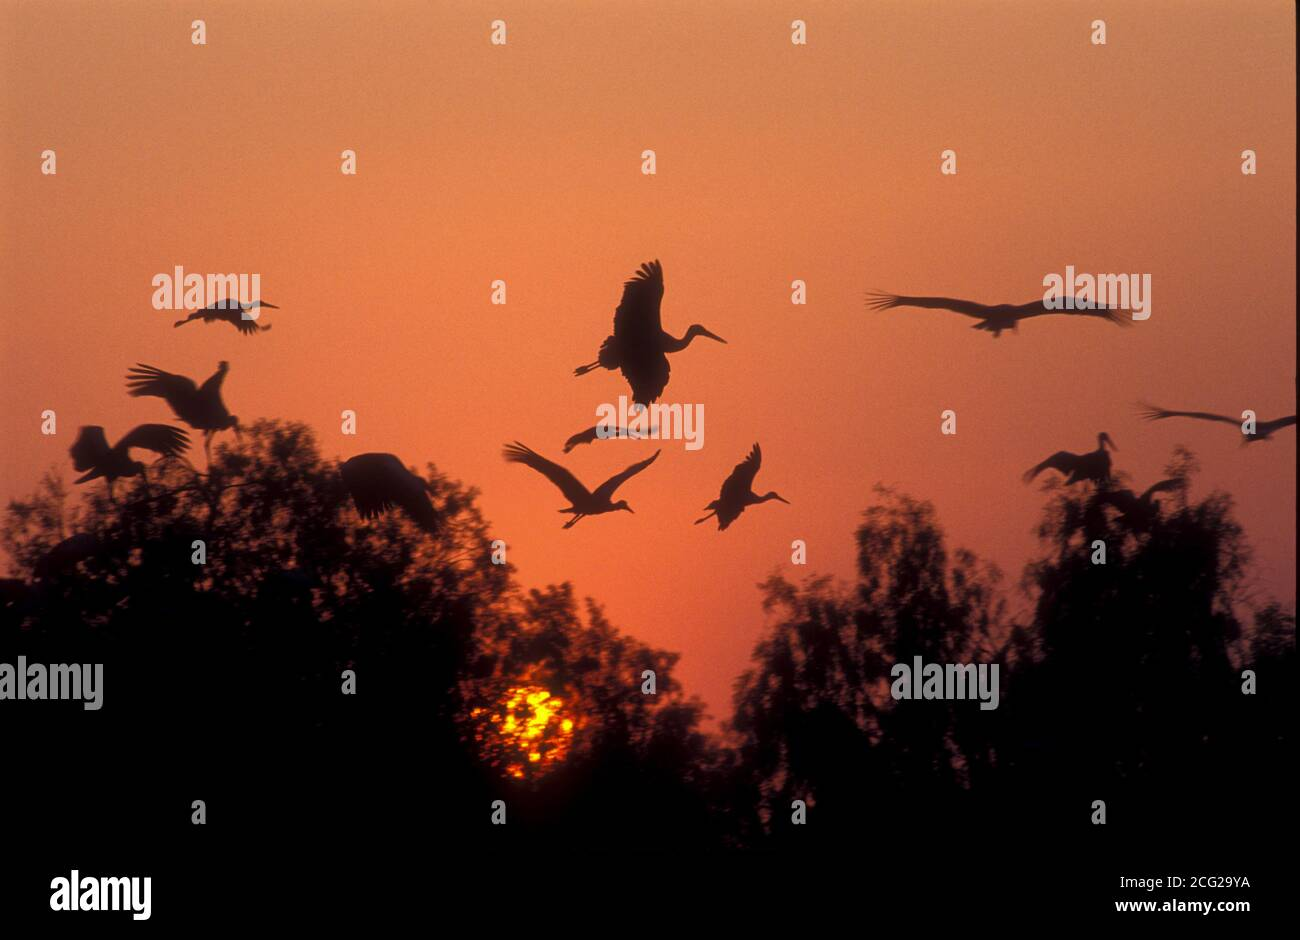 a flock of White storks (Ciconia ciconia) flying over treetops at sunset. The white stork is found in parts of Europe and southwestern Asia, and is a Stock Photo